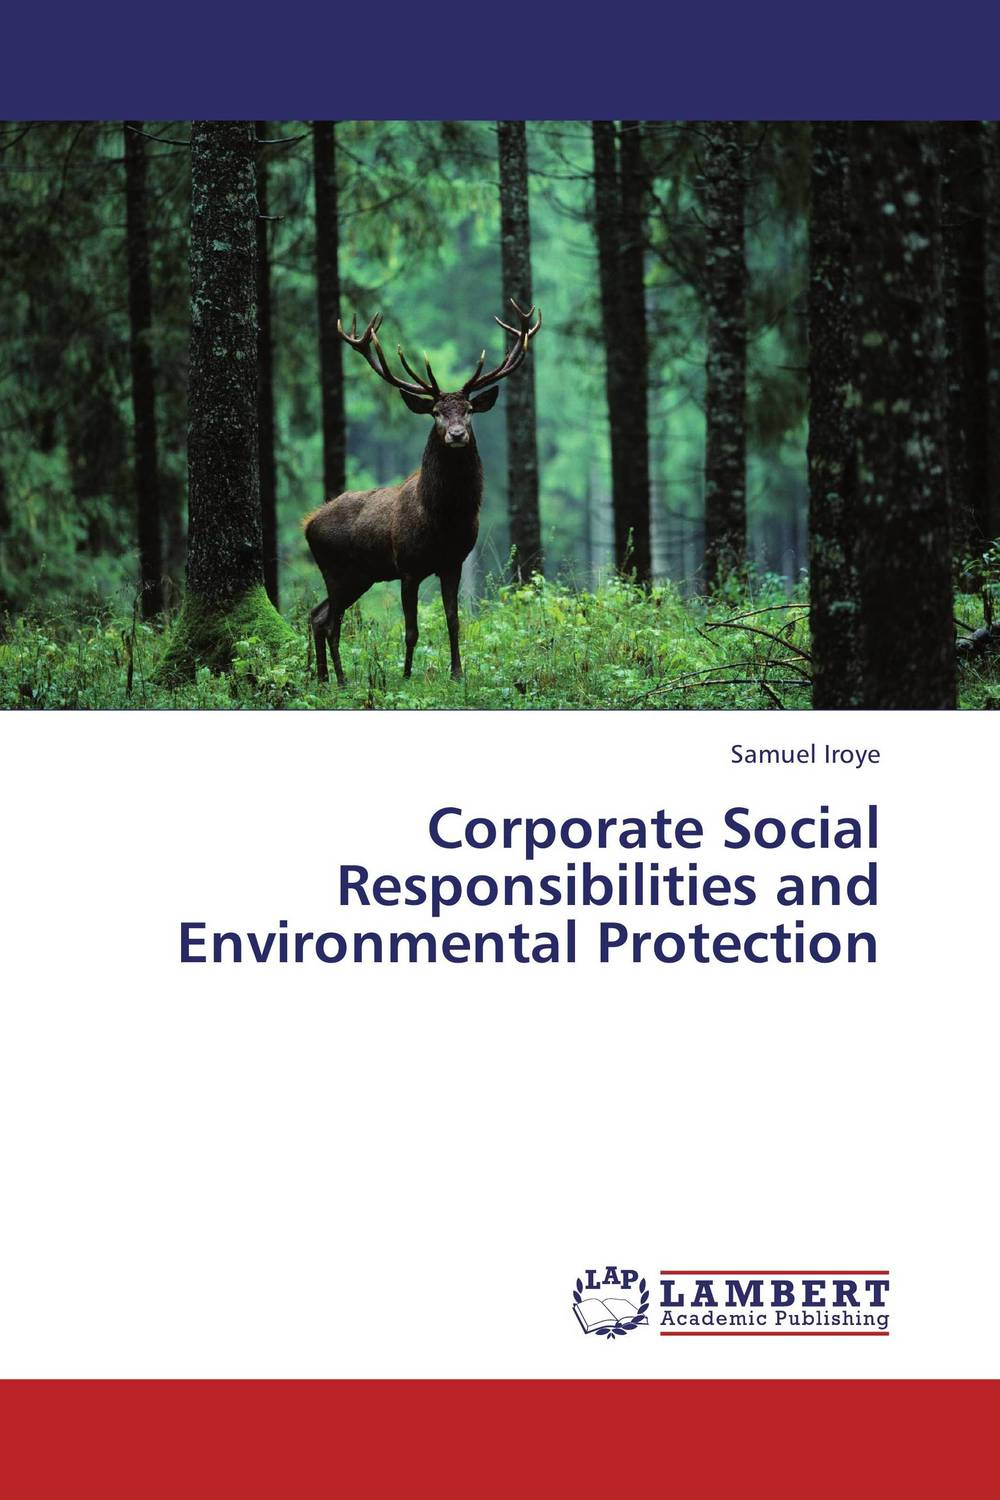 Corporate Social Responsibilities and Environmental Protection marc lane j the mission driven venture business solutions to the world s most vexing social problems